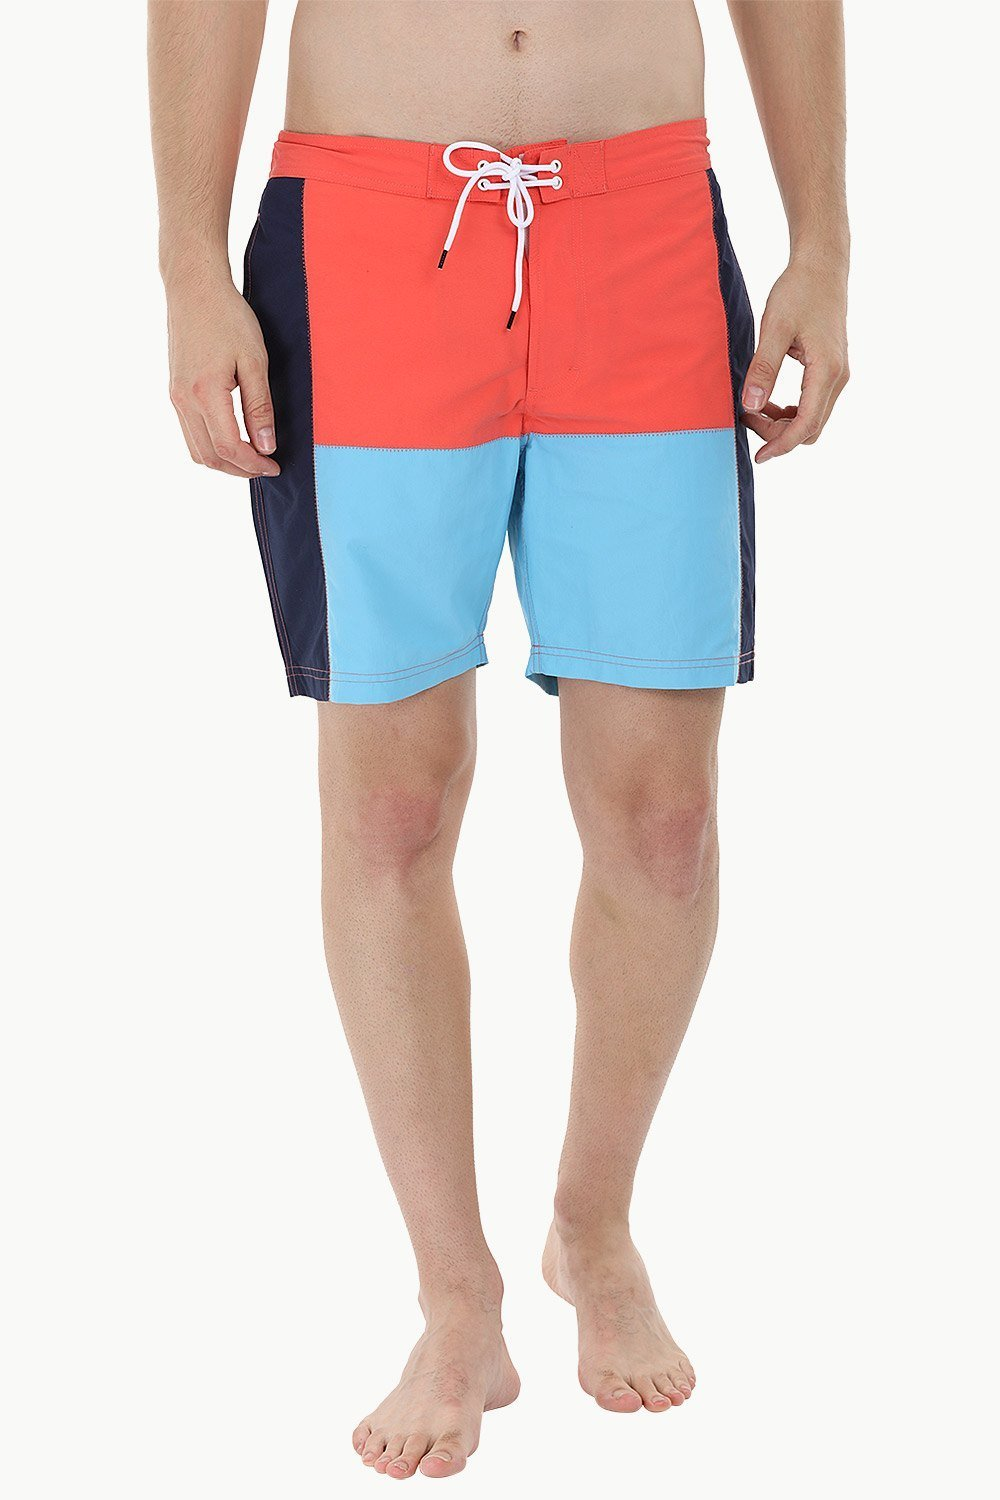 4a1a6eab5b Since then the facility of buying swimwear online in India for plus size  has introduced by top leading brands like Zobello, men now have unlimited  options ...